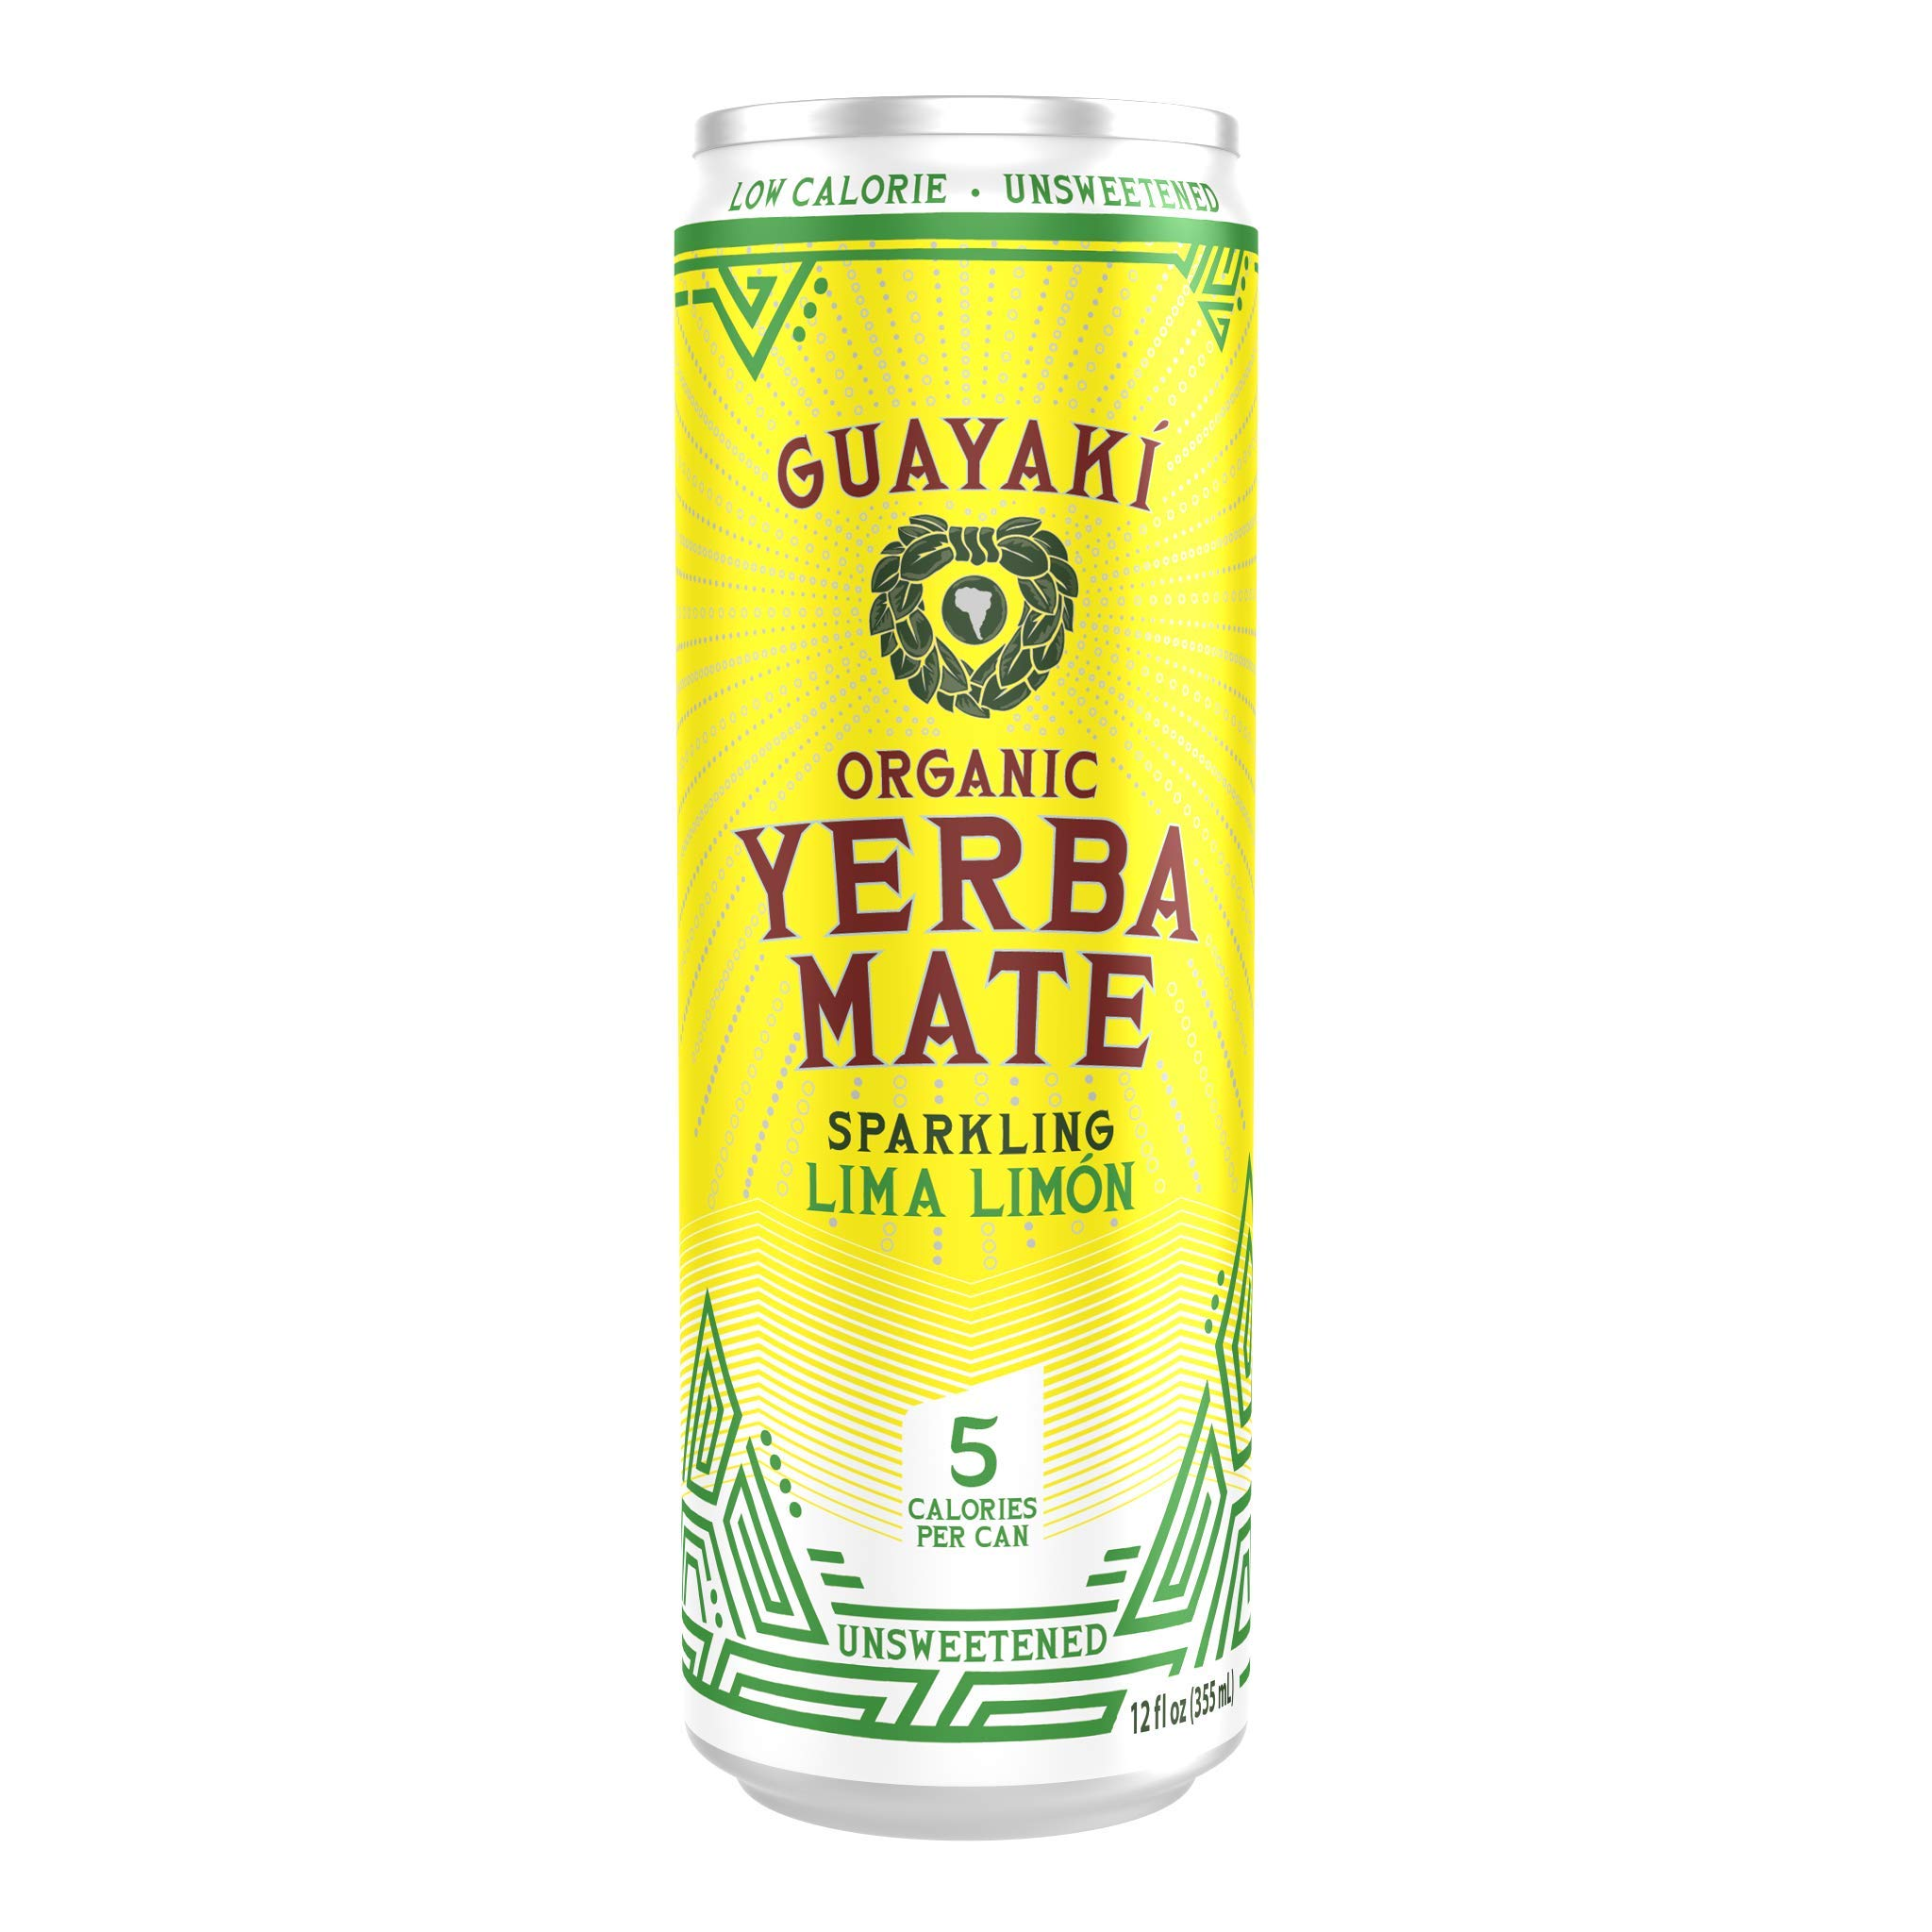 Guayaki Yerba Mate Sparkling Lima Limòn, 12-Ounce Can (Pack of 12)